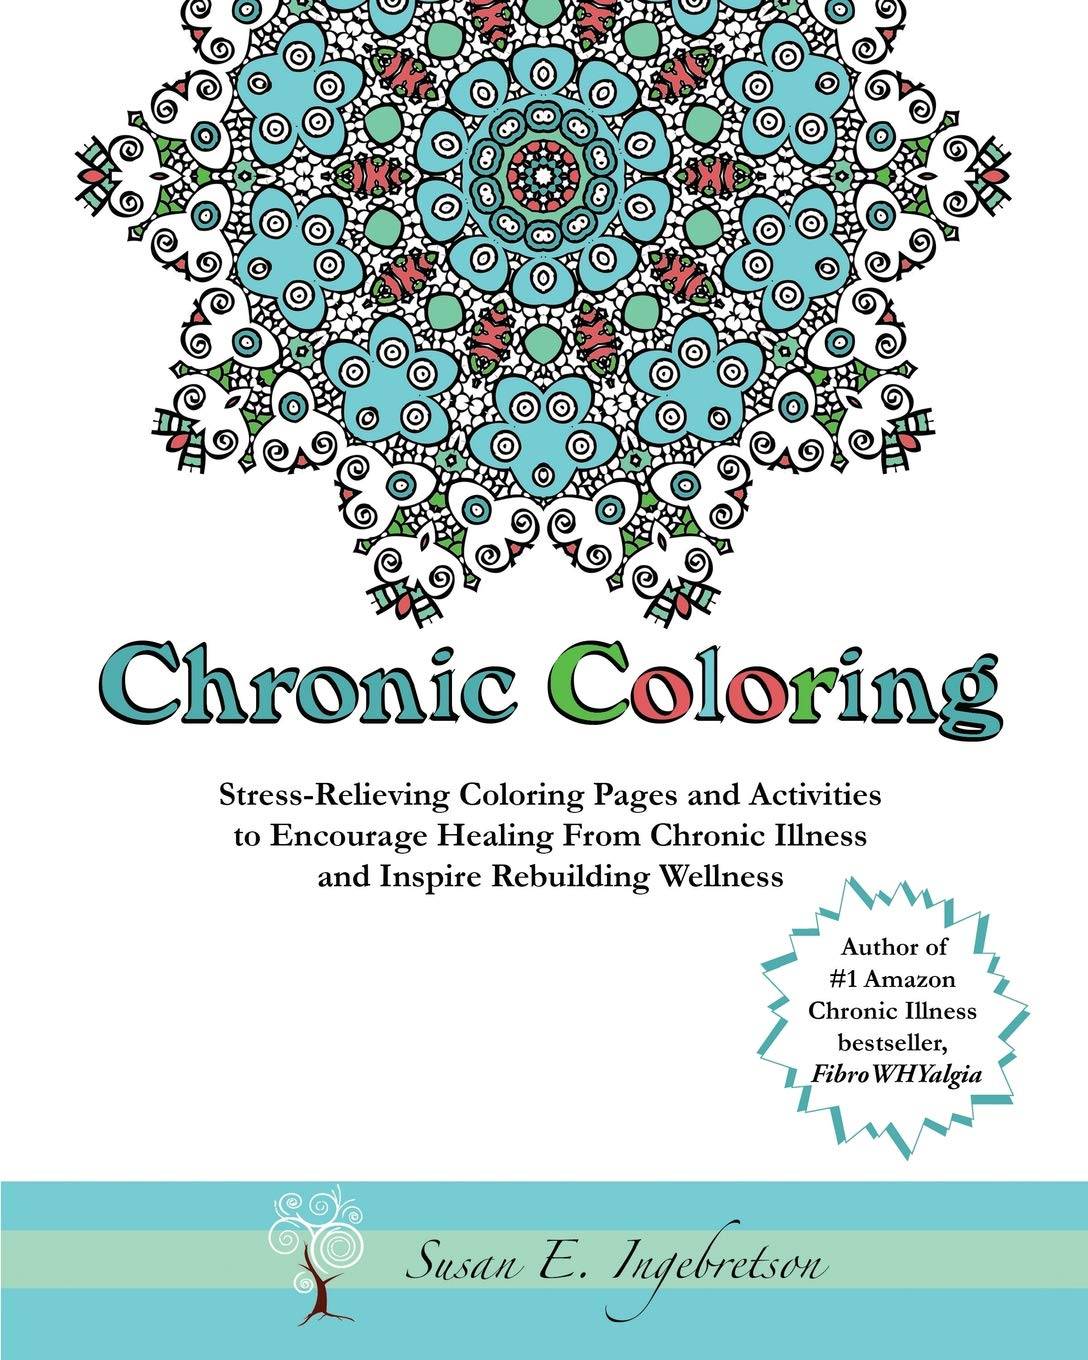 Chronic Coloring Stress Relieving Coloring Pages And Activities To Encourage Healing From Chronic Illness And Inspire Rebuilding Wellness Ingebretson Susan E Ornelas Fawn 9780984311828 Amazon Com Books